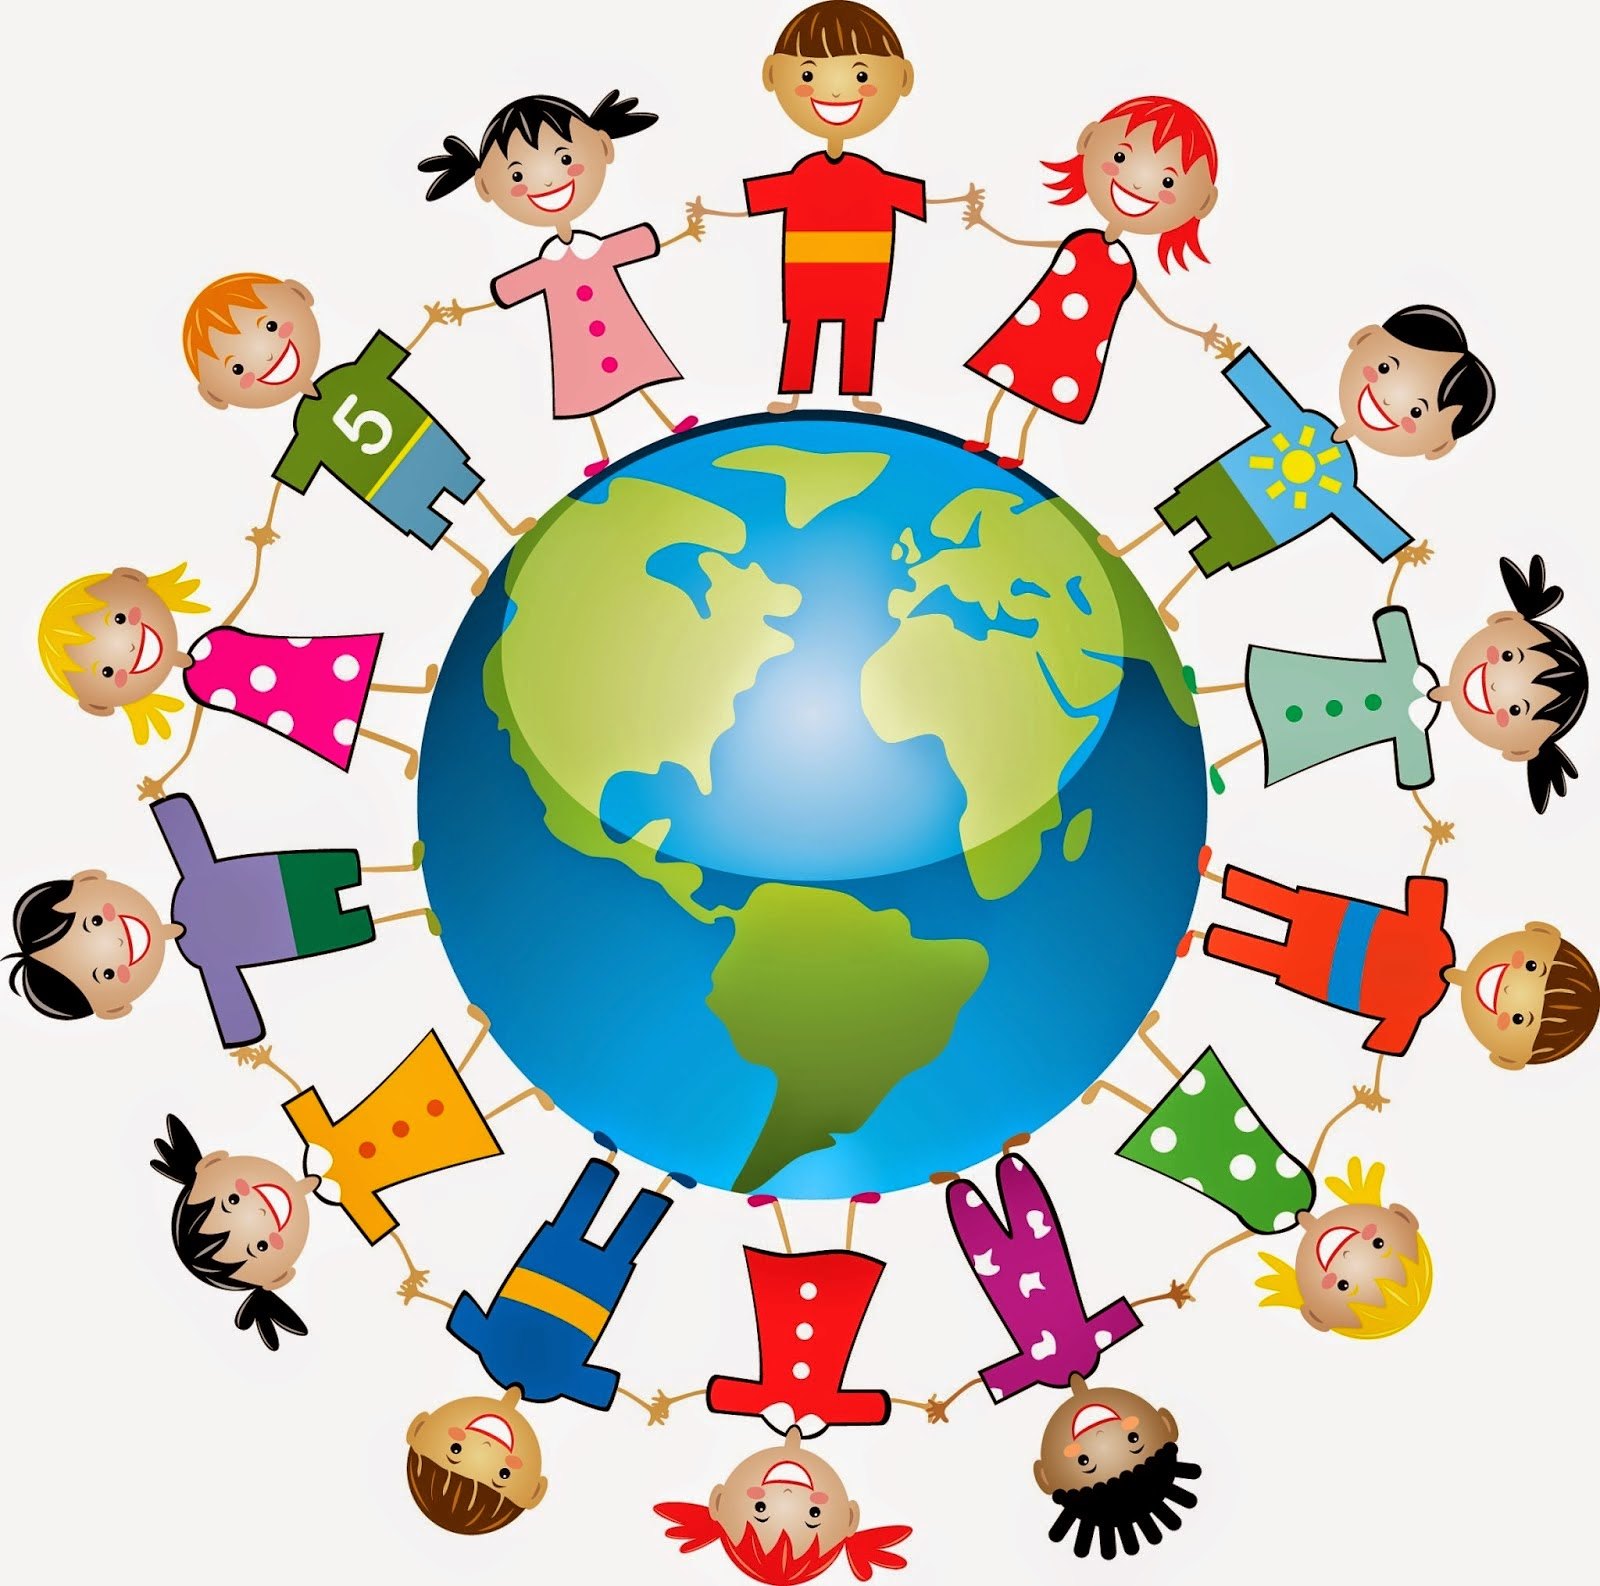 Free Together Cliparts, Download Free Clip Art, Free Clip.